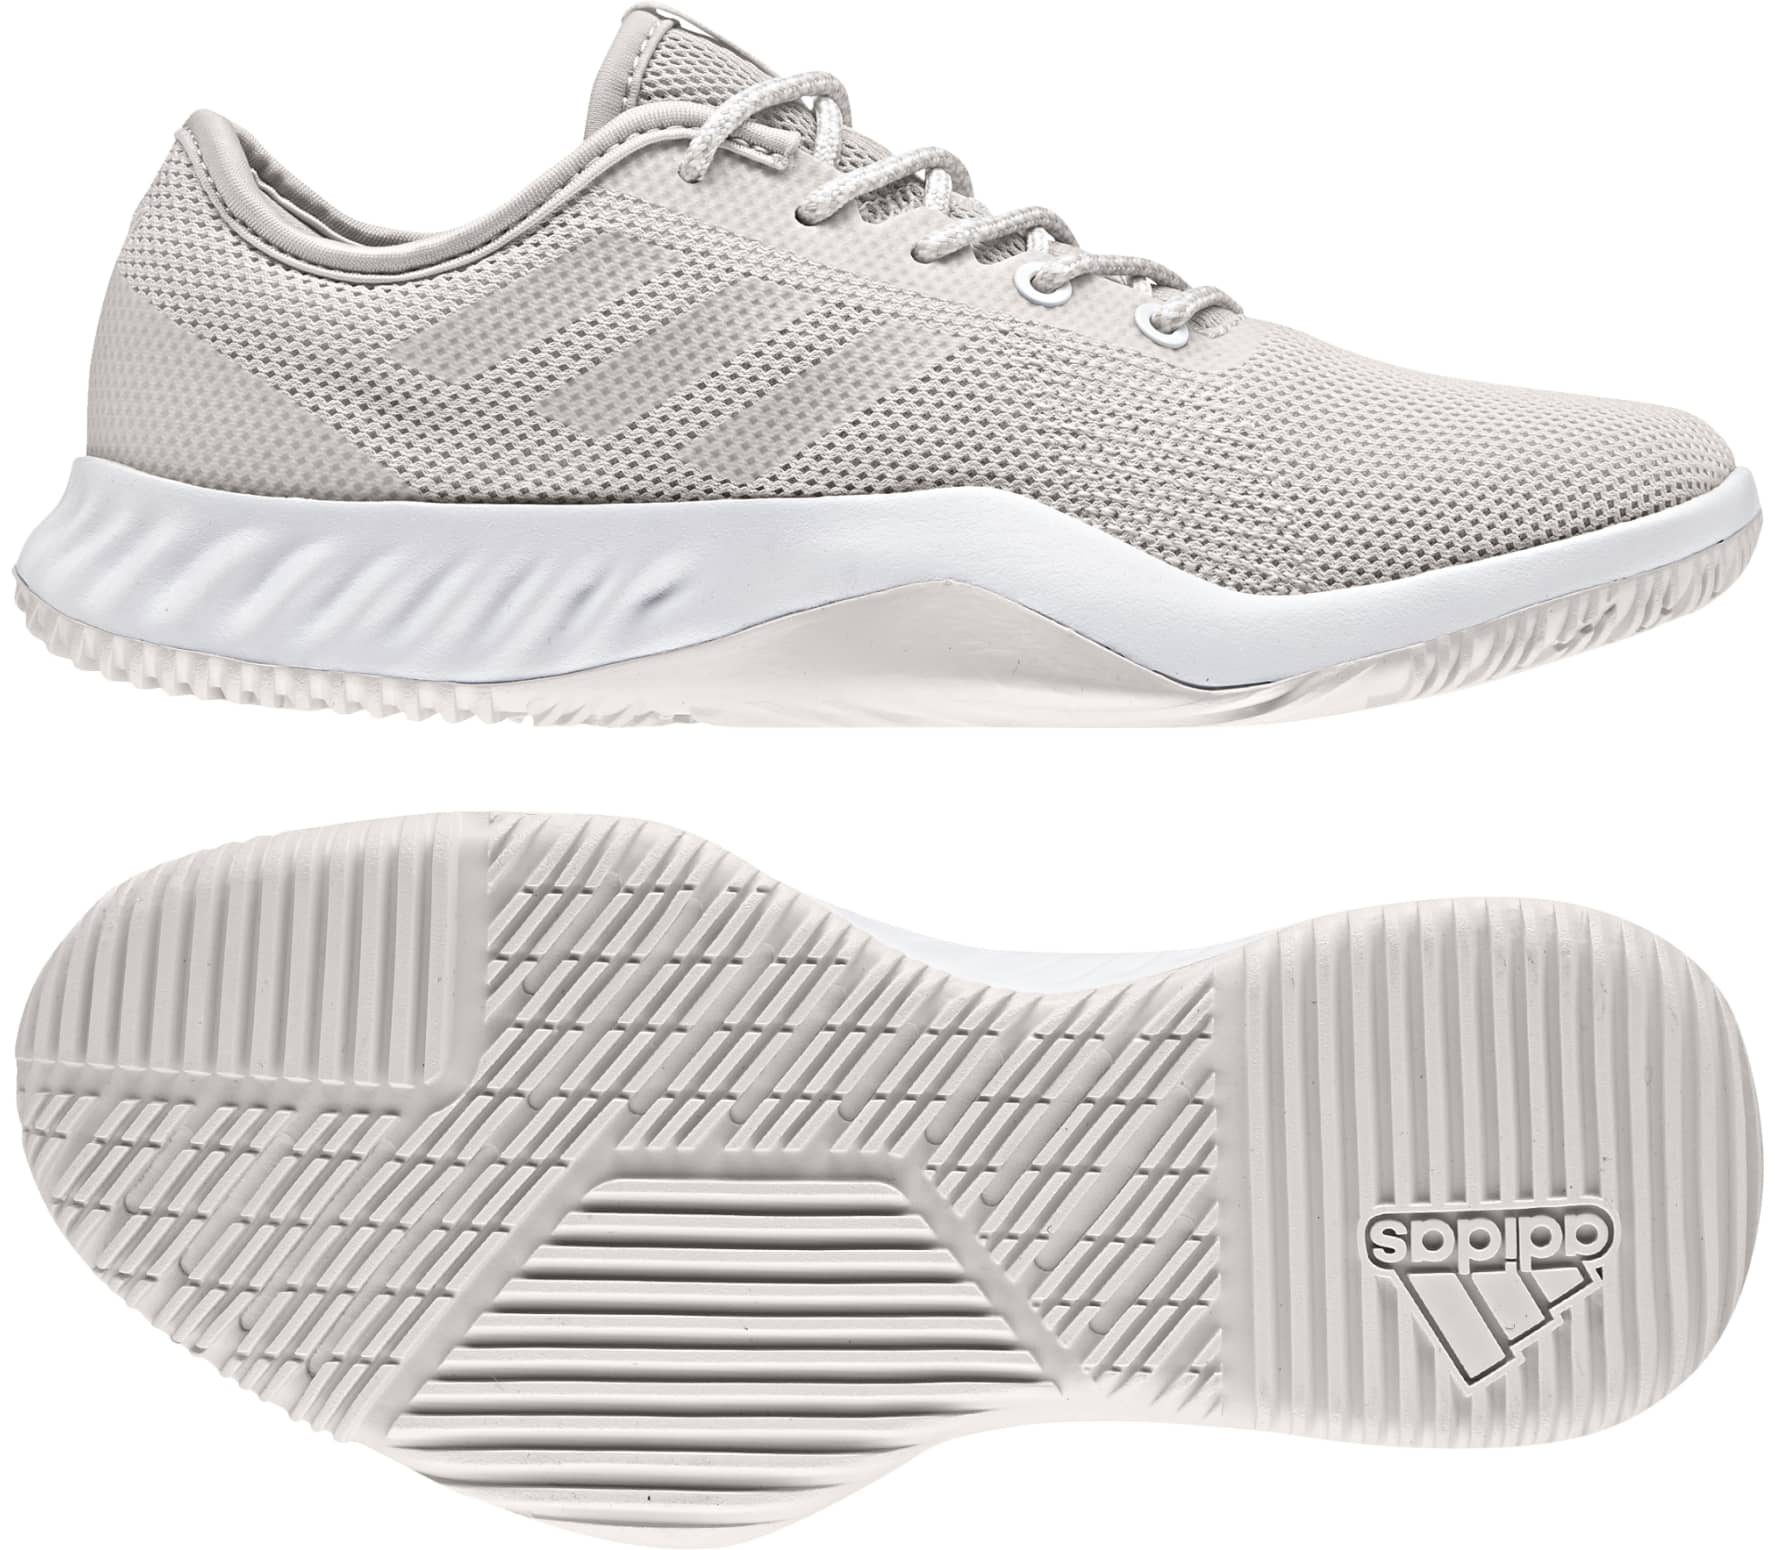 wholesale dealer dd7c2 05d65 Adidas - CrazyTrain LT women s training shoes (grey white)